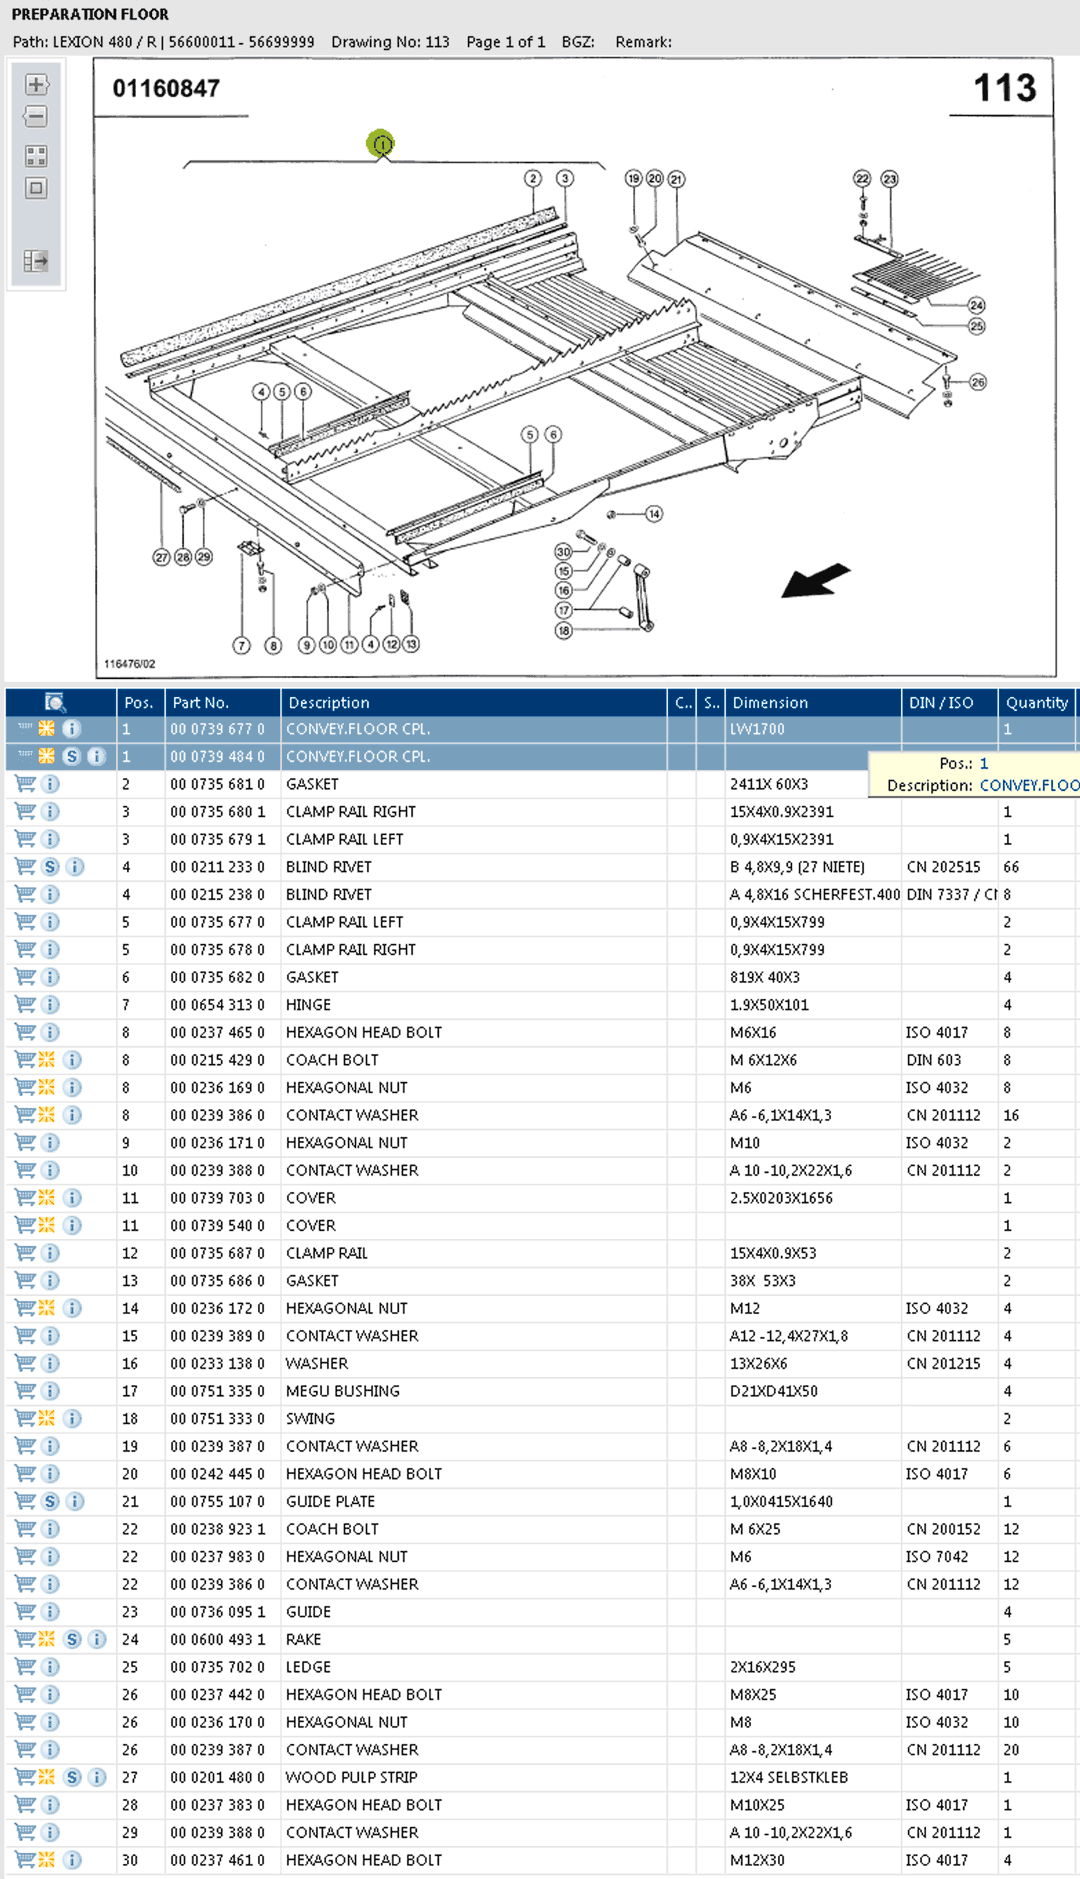 Lexion 480R parts and scheme - preparation floor and frame